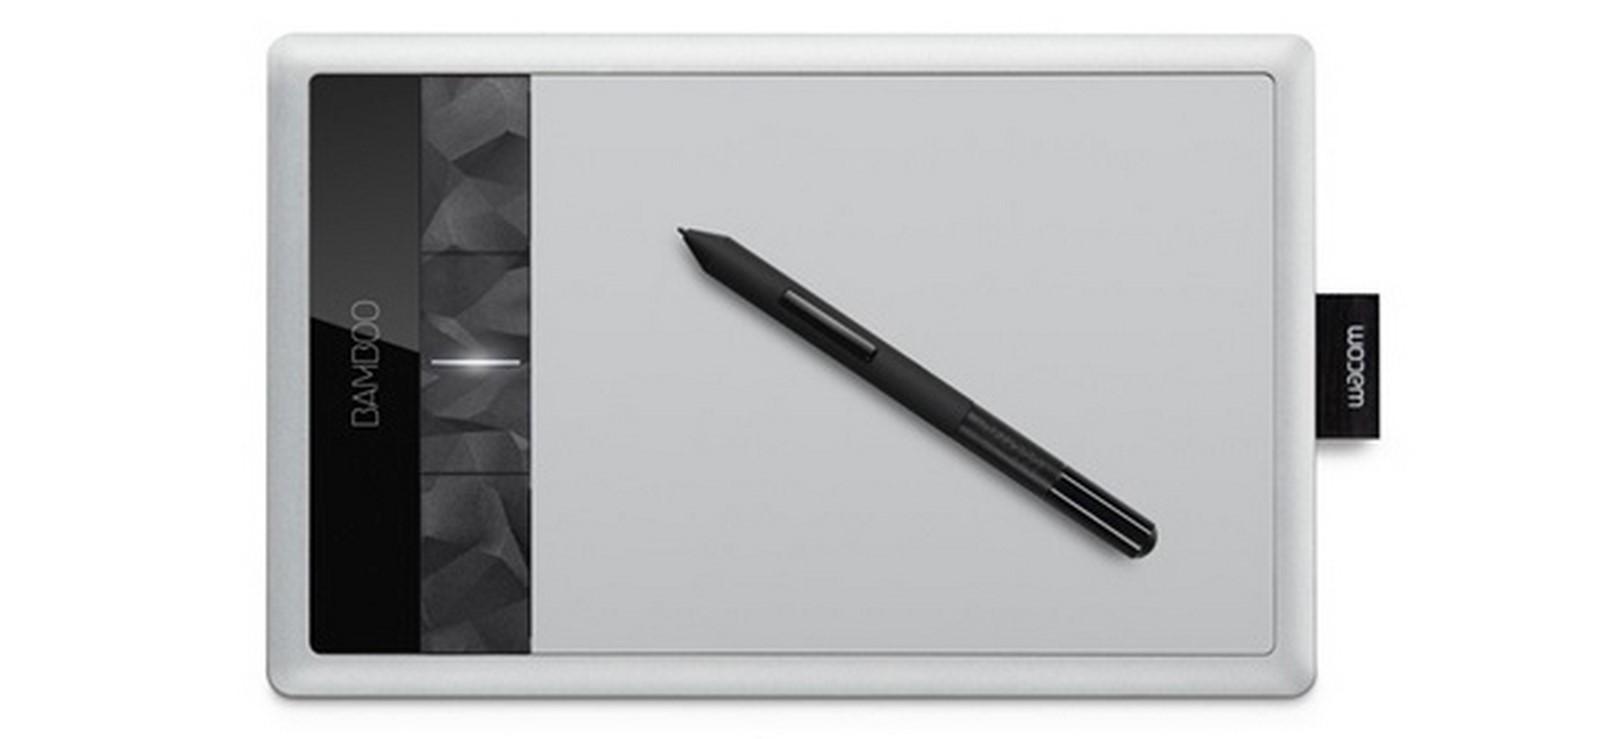 10 must have gadgets for every architect - Sheet2